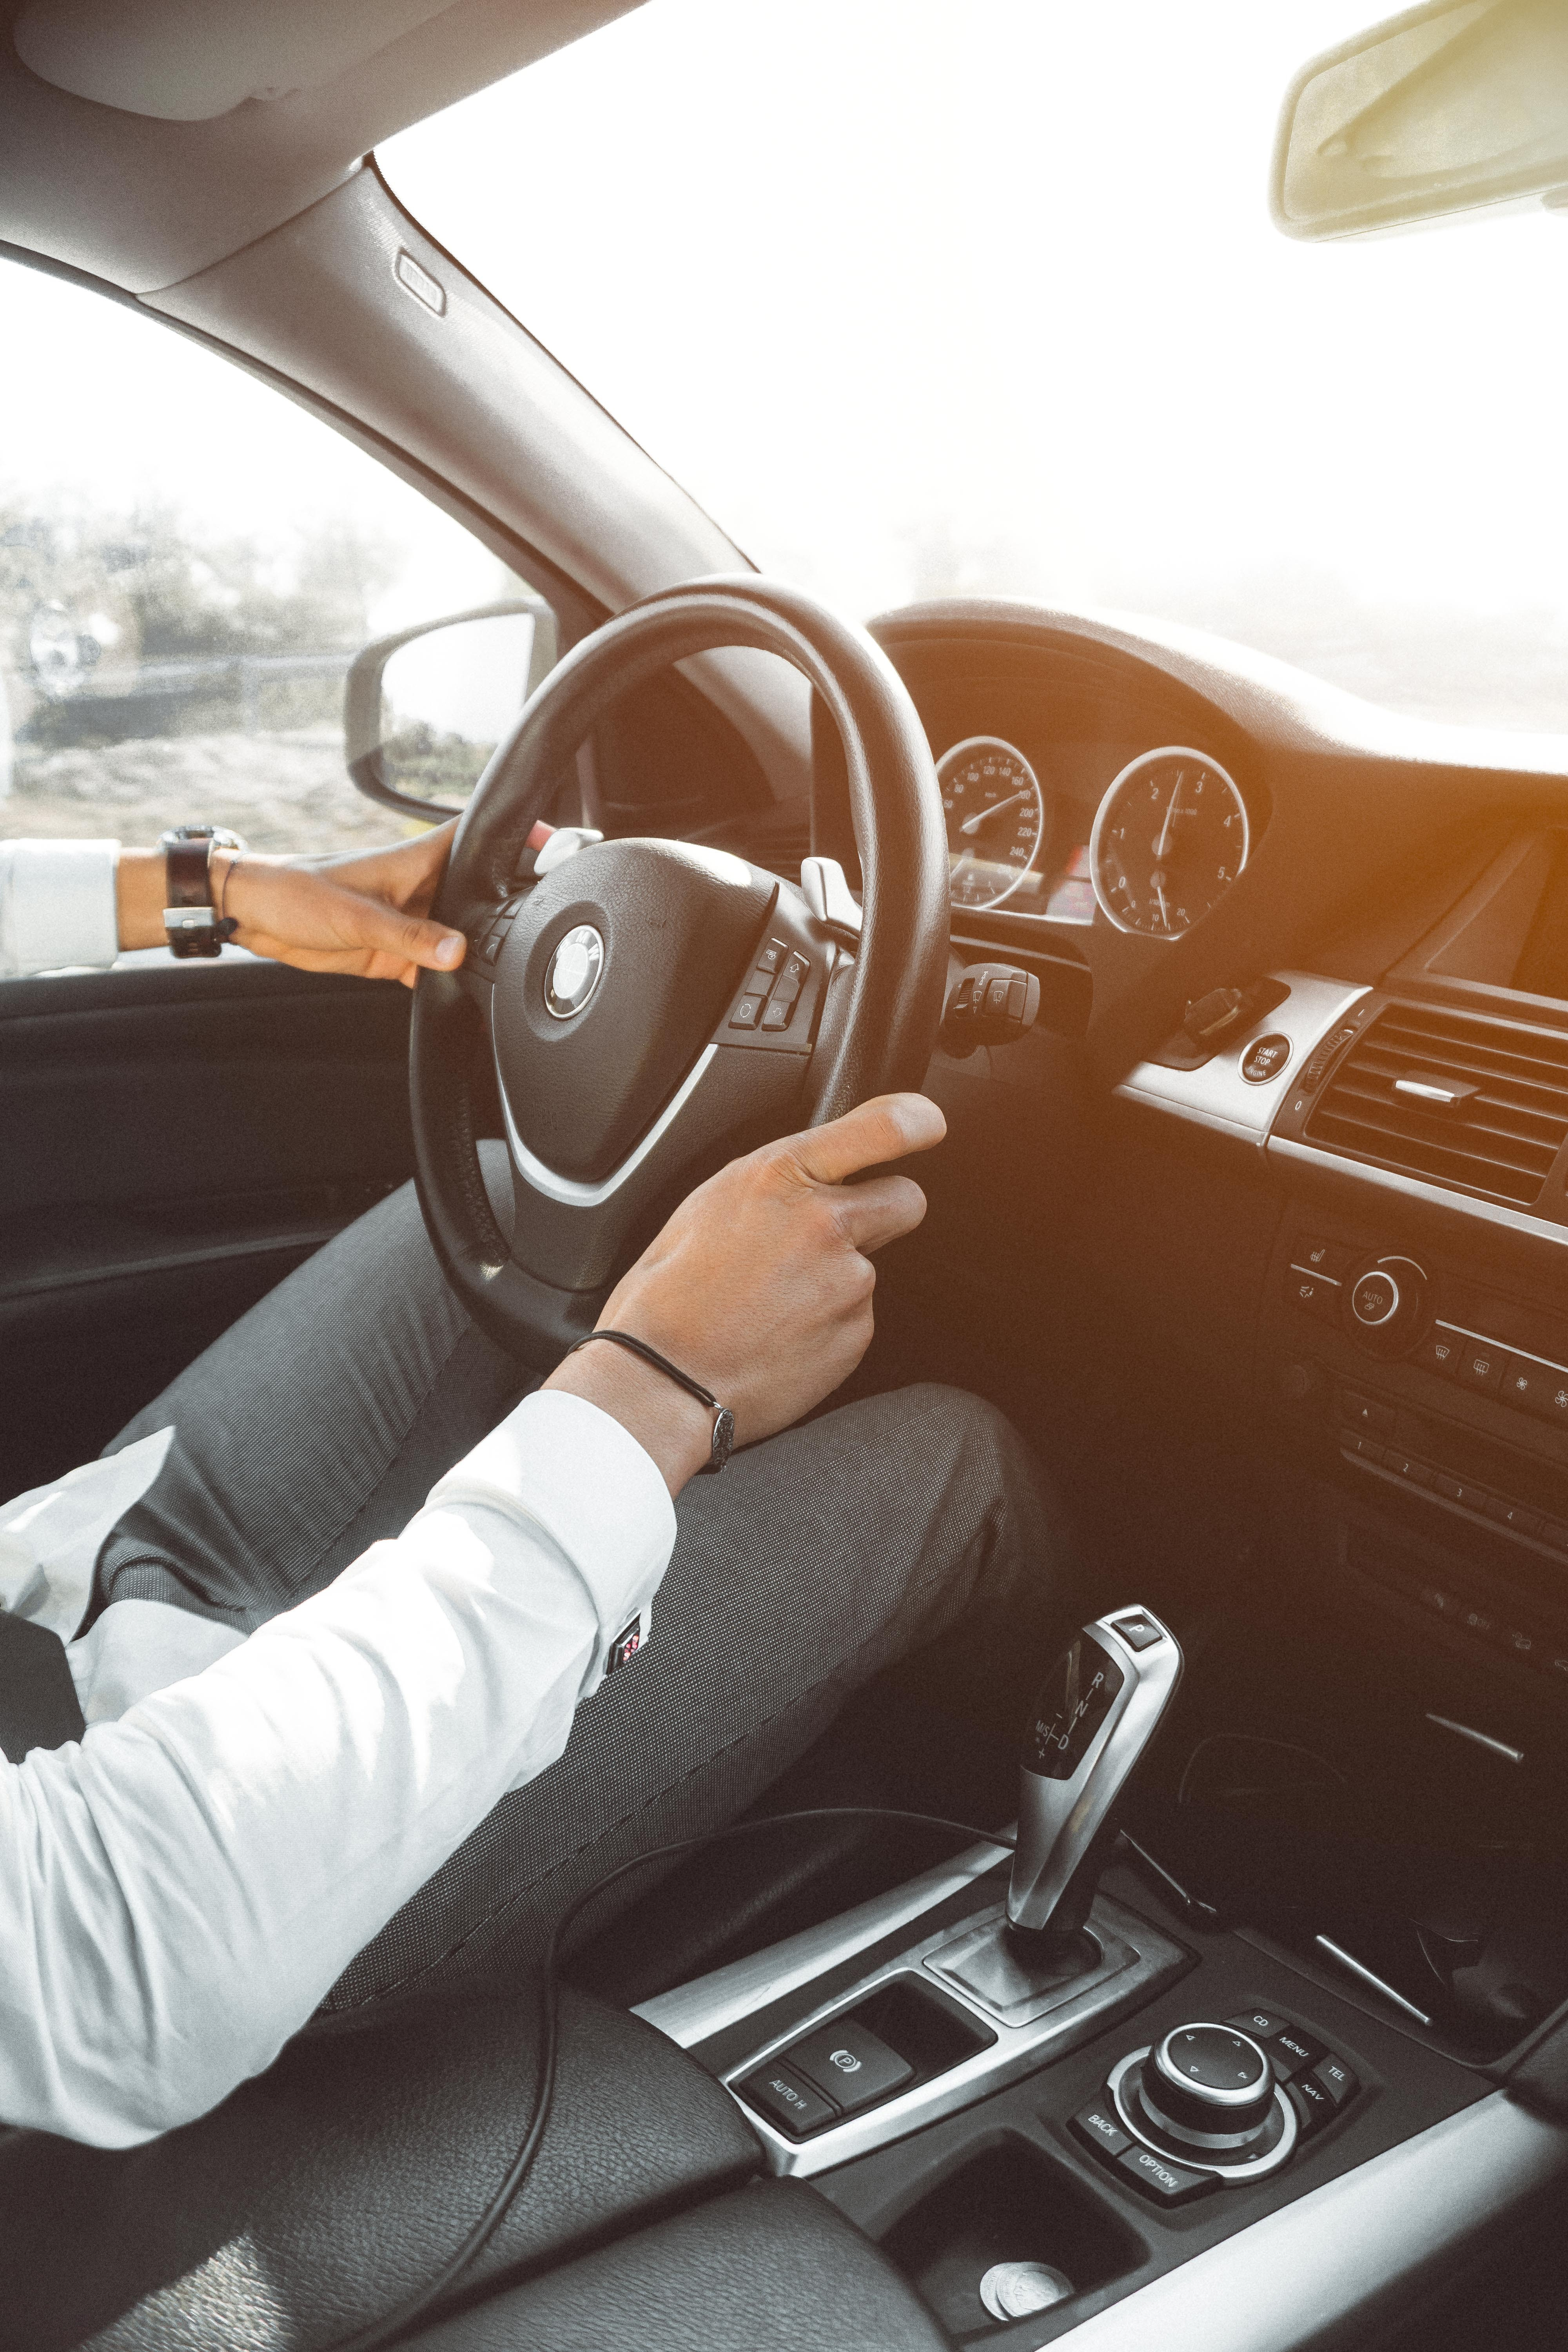 Man in White Dress Shirt Holding Steering Wheel, Automobile, Person, Vehicle, Transportation system, HQ Photo